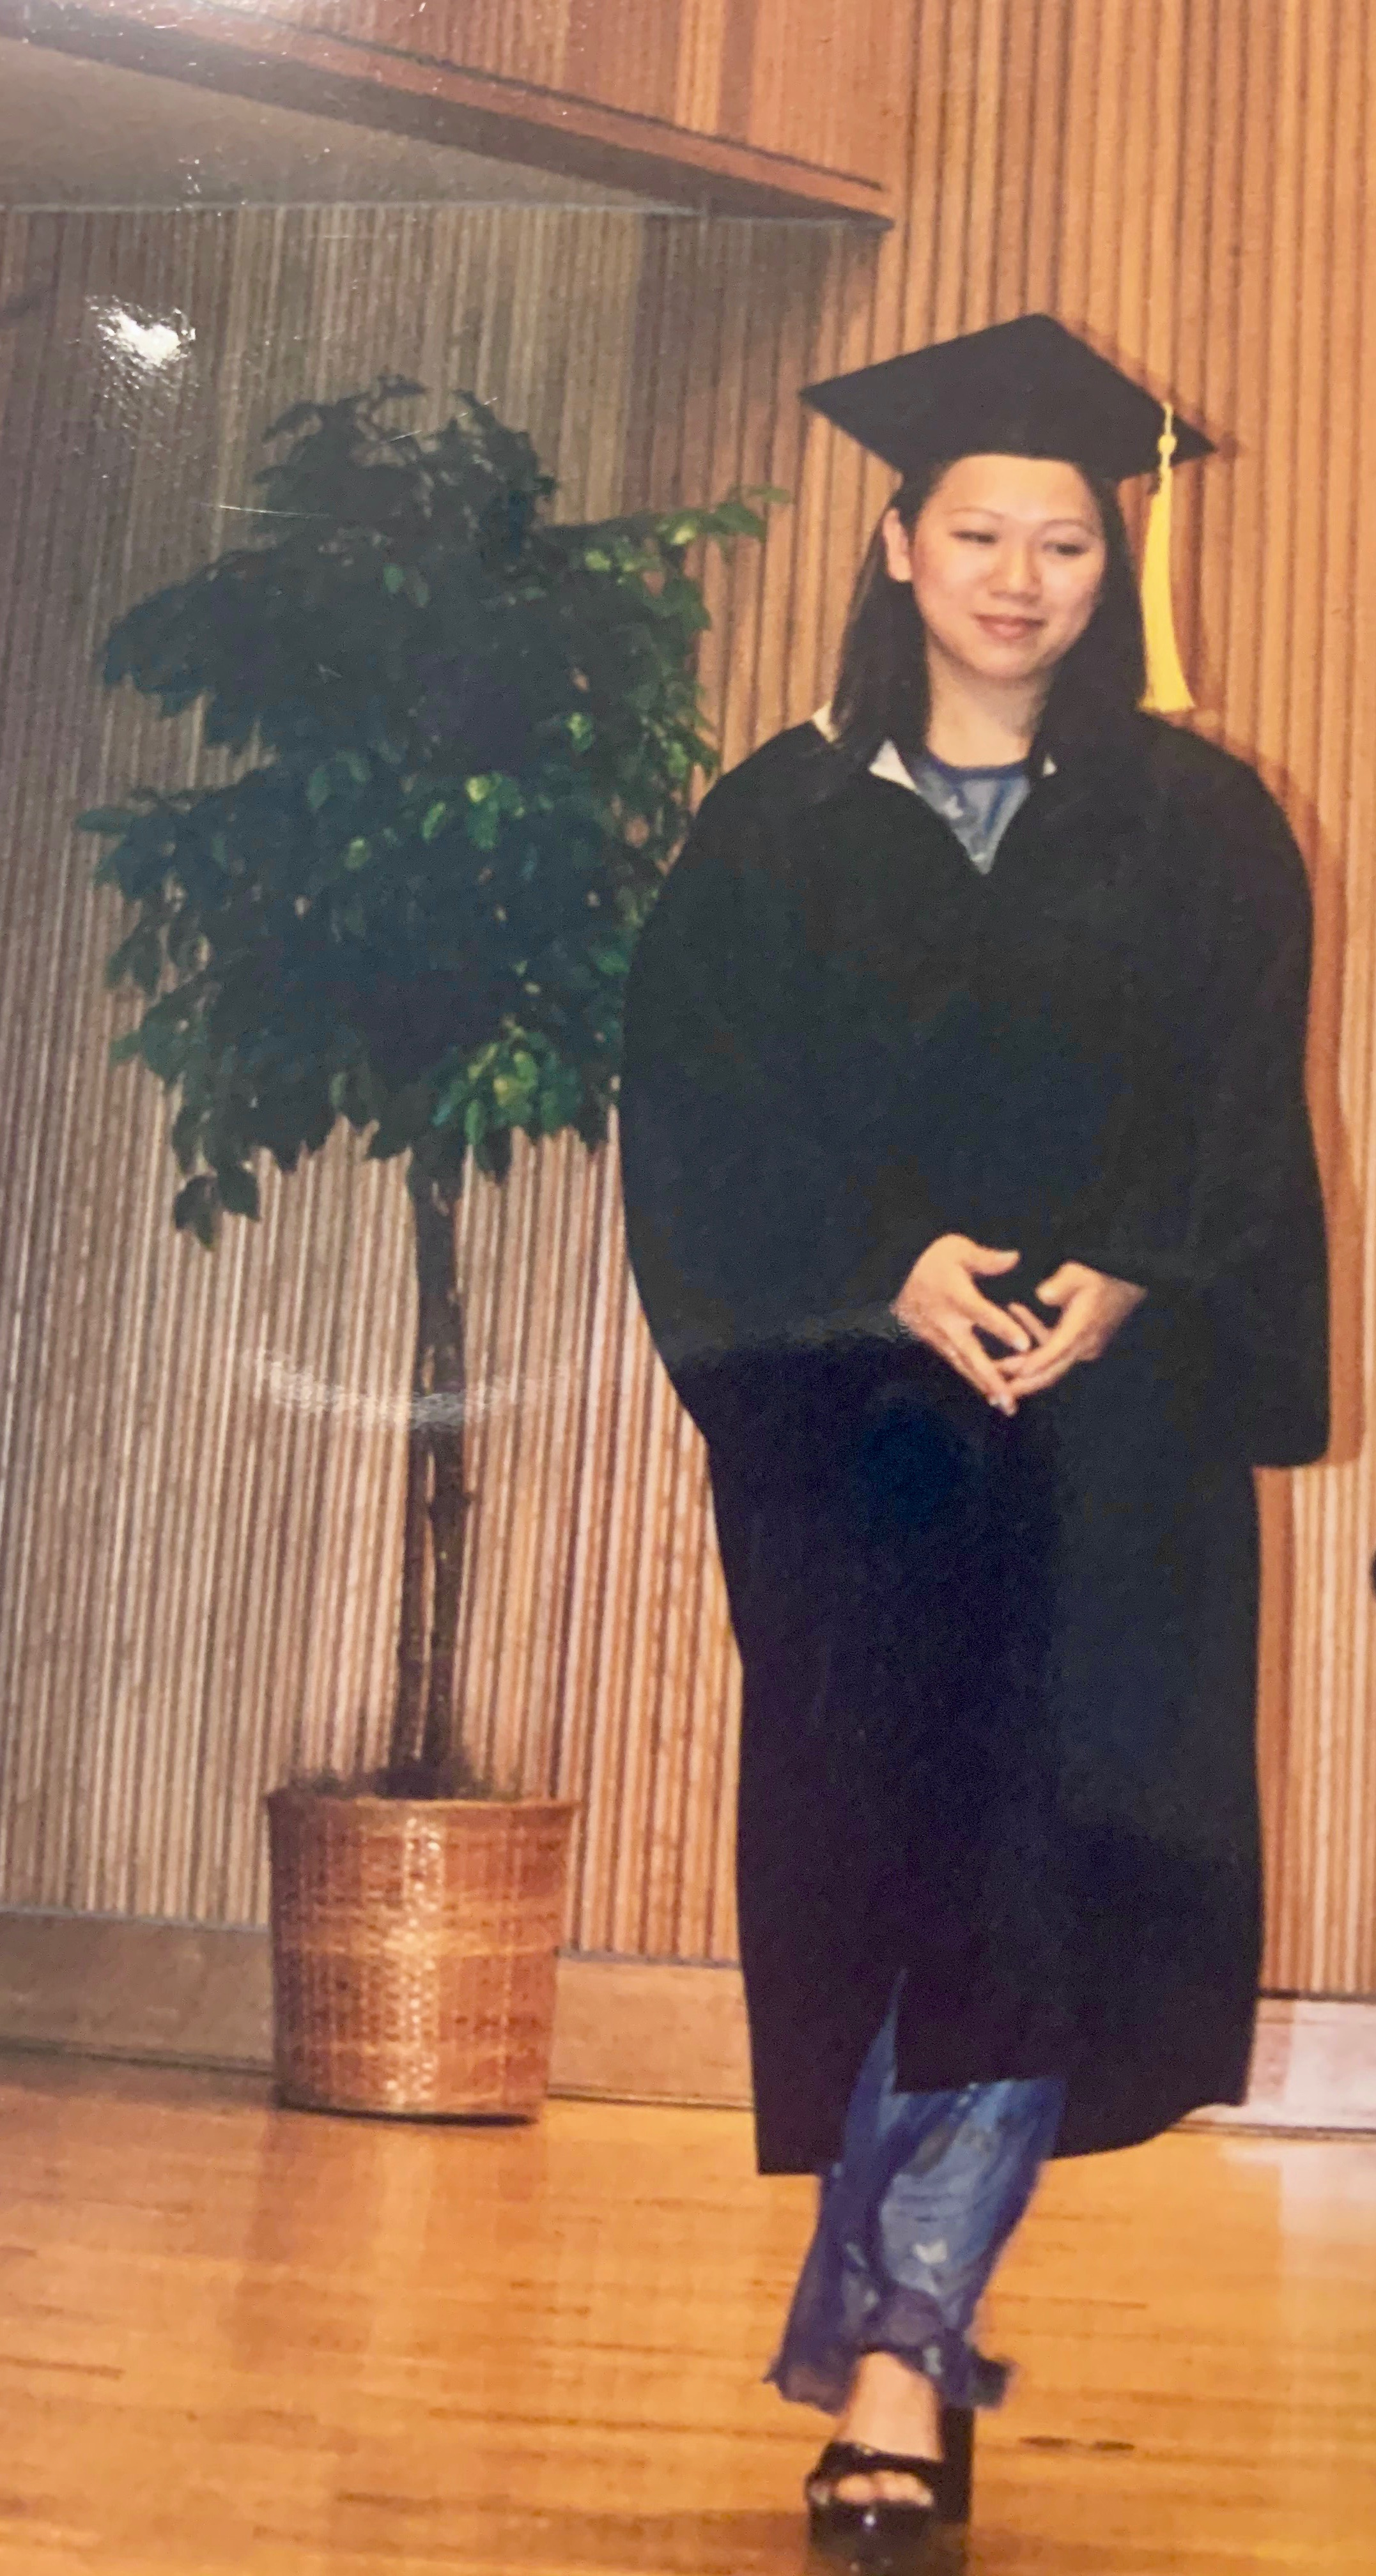 Phuong Huynh at her own graduation